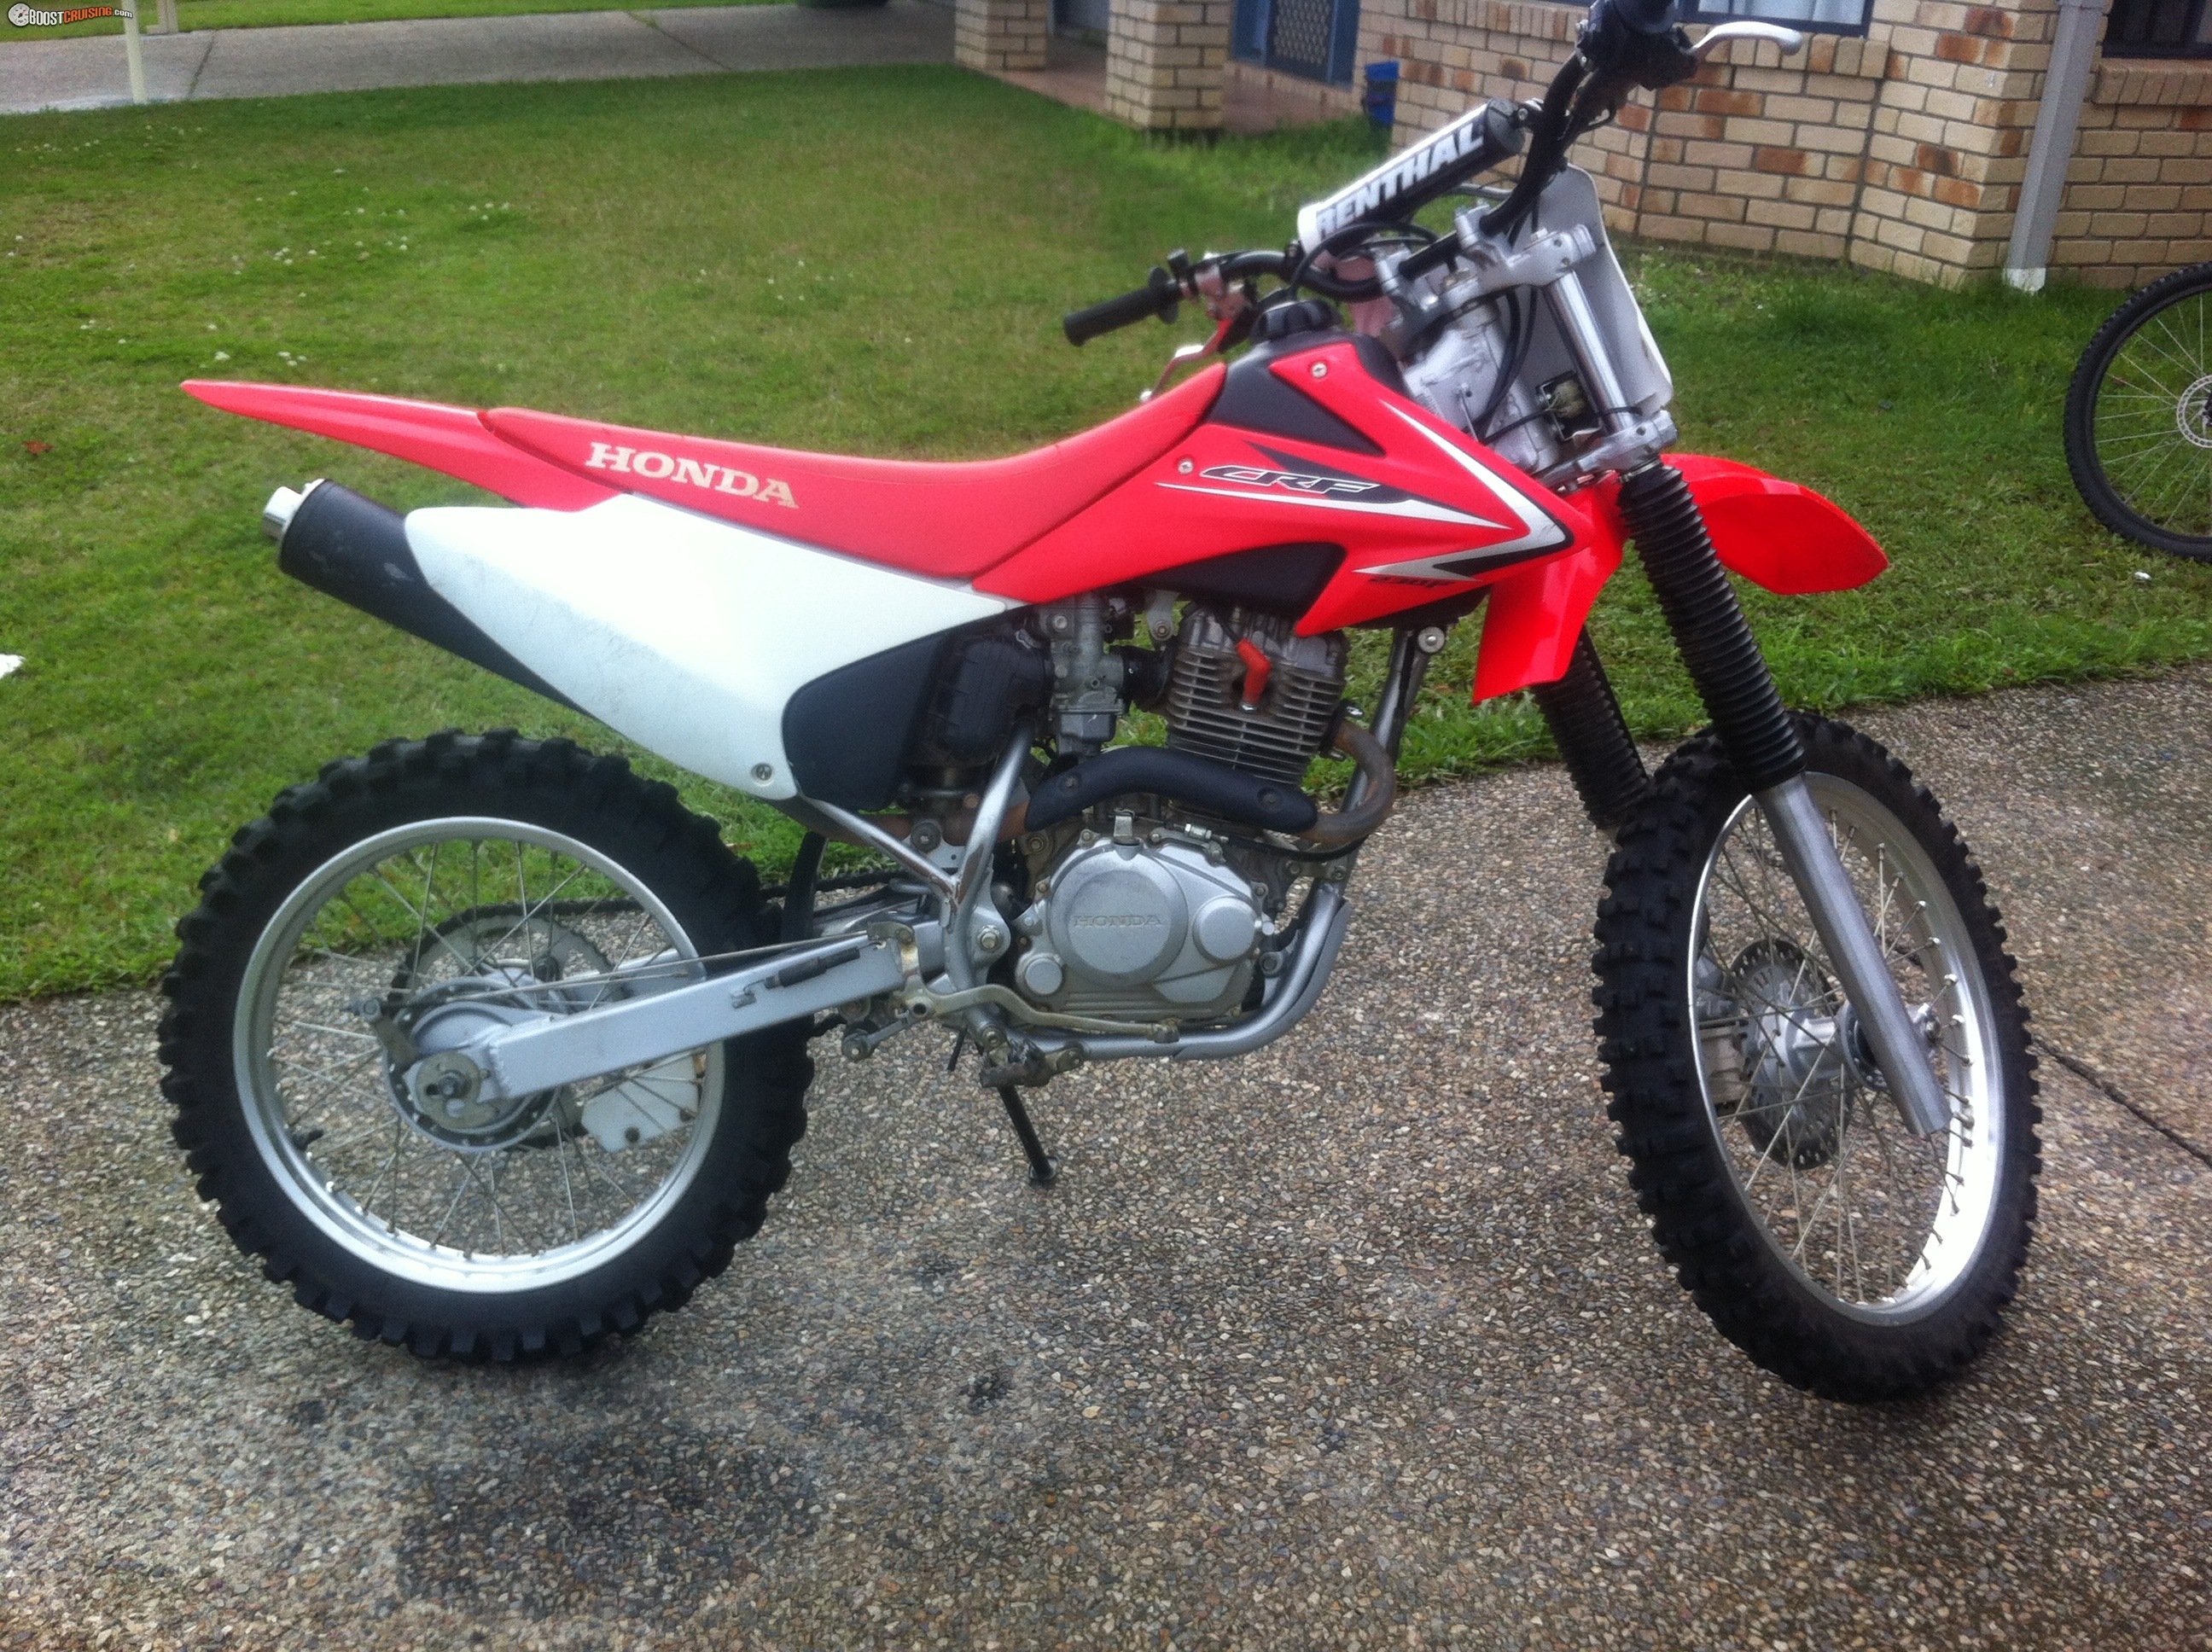 Honda crf230f photo - 7